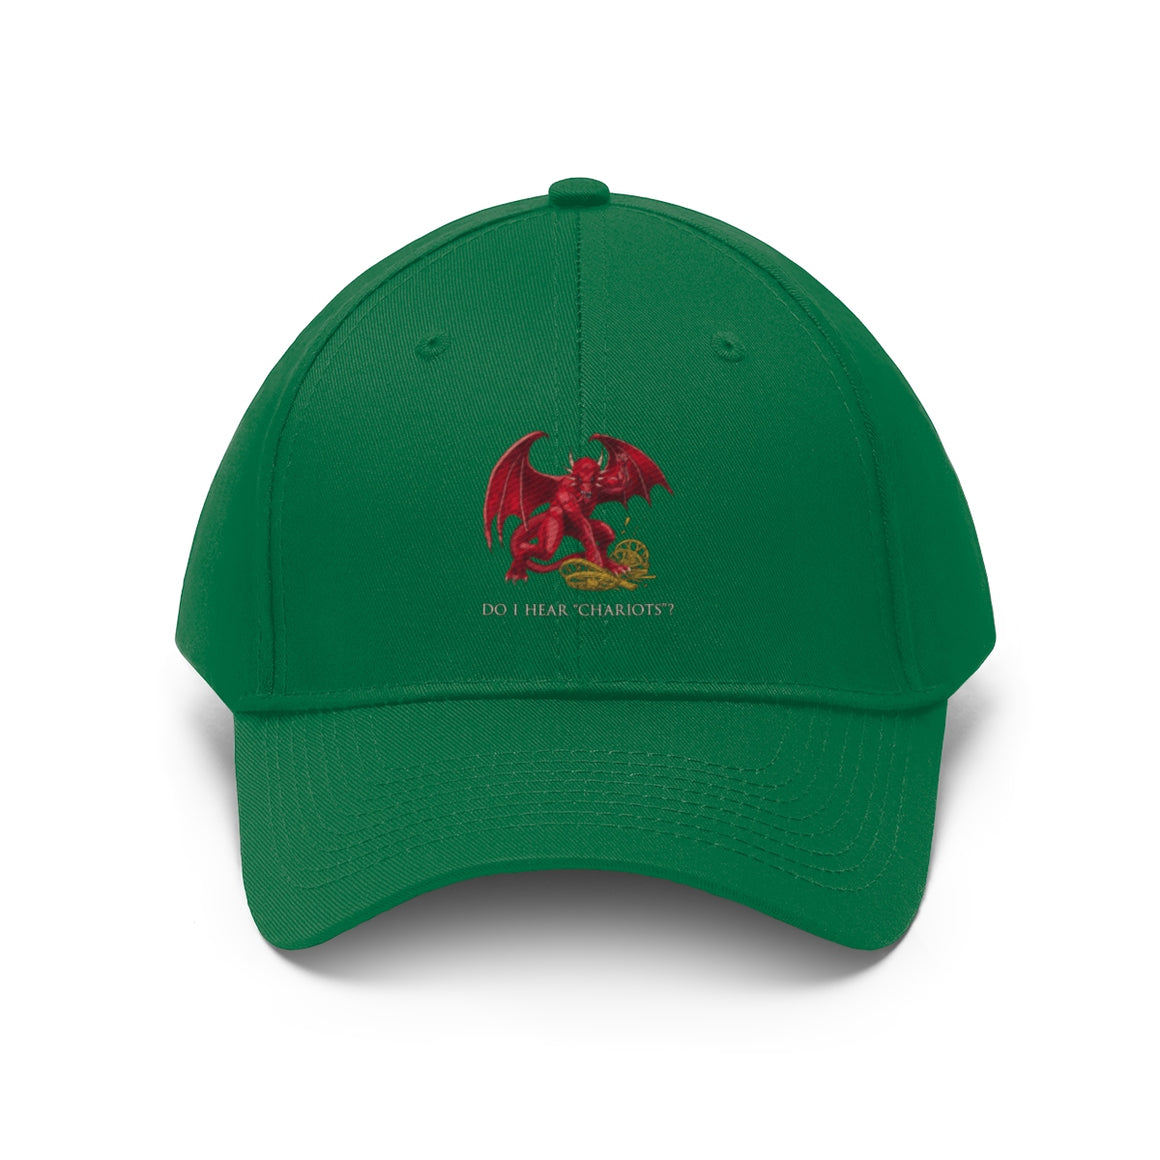 The Welsh Dragon Unisex Twill Hat